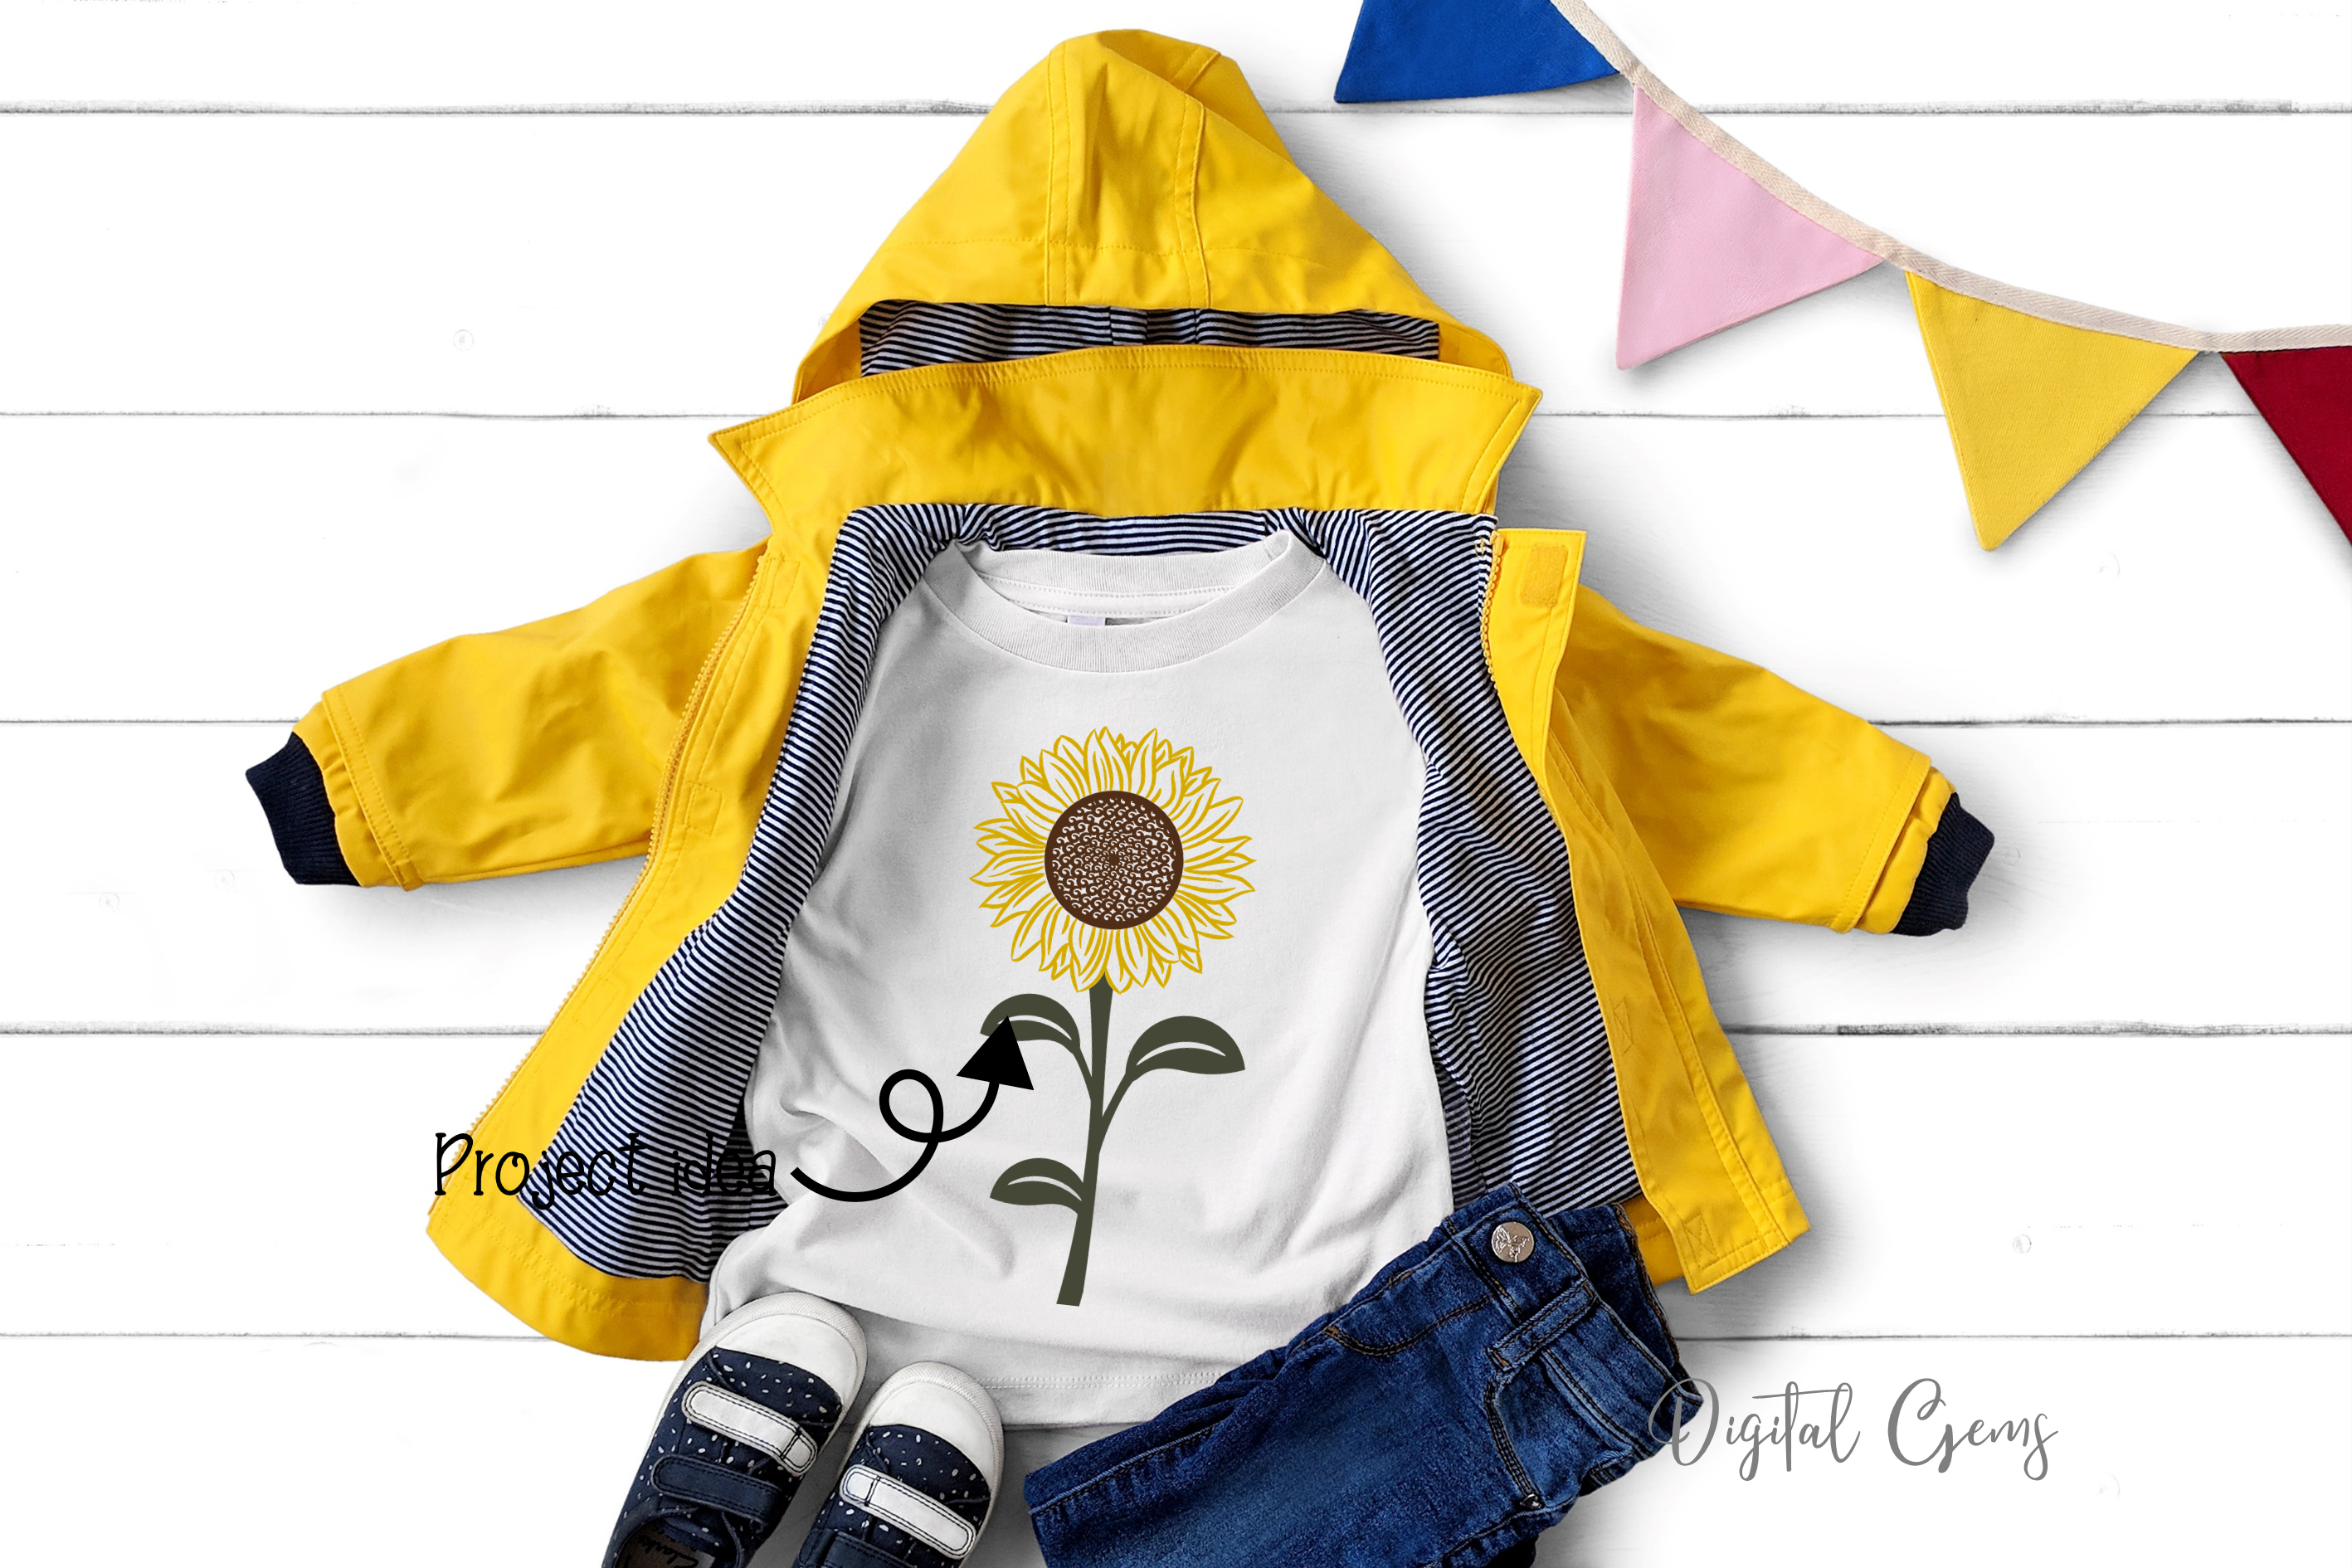 Sunflower designs SVG / PNG / EPS / DXF Files example image 5